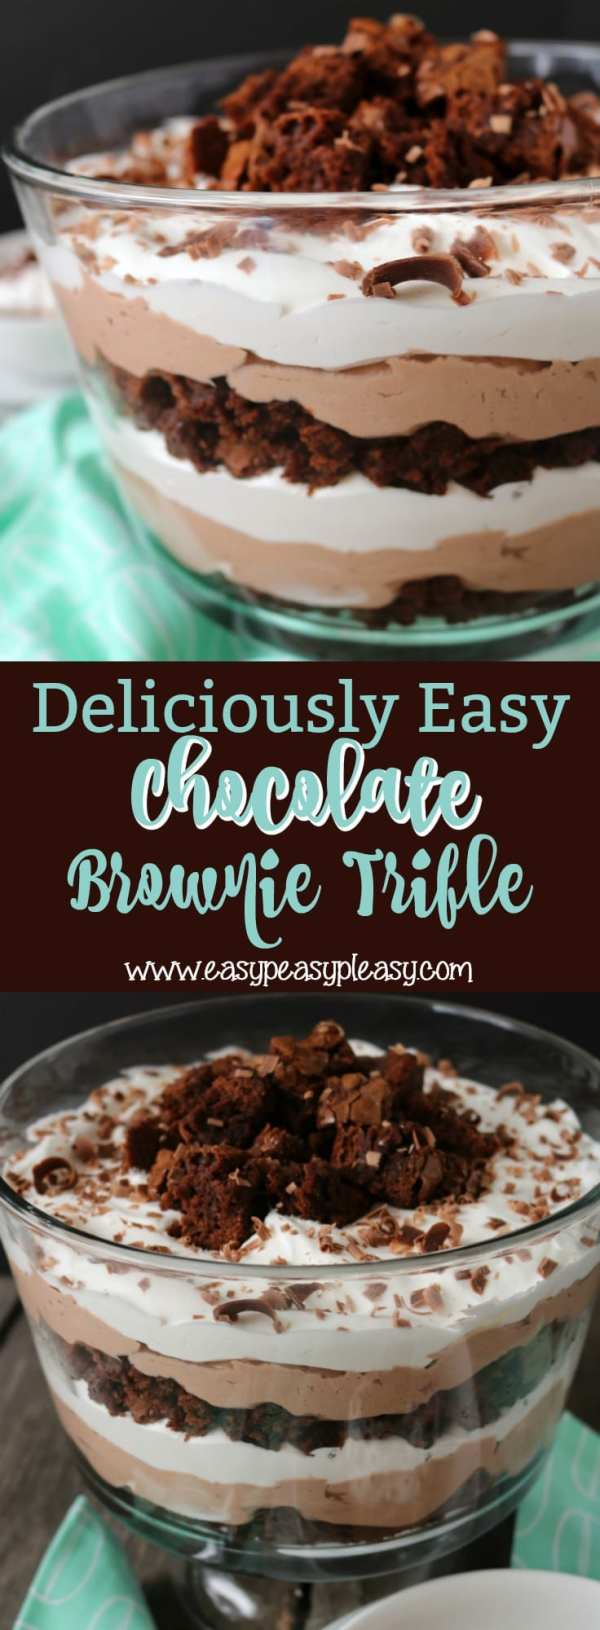 Deliciously Easy Chocolate Brownie Trifle Easy Peasy Pleasy